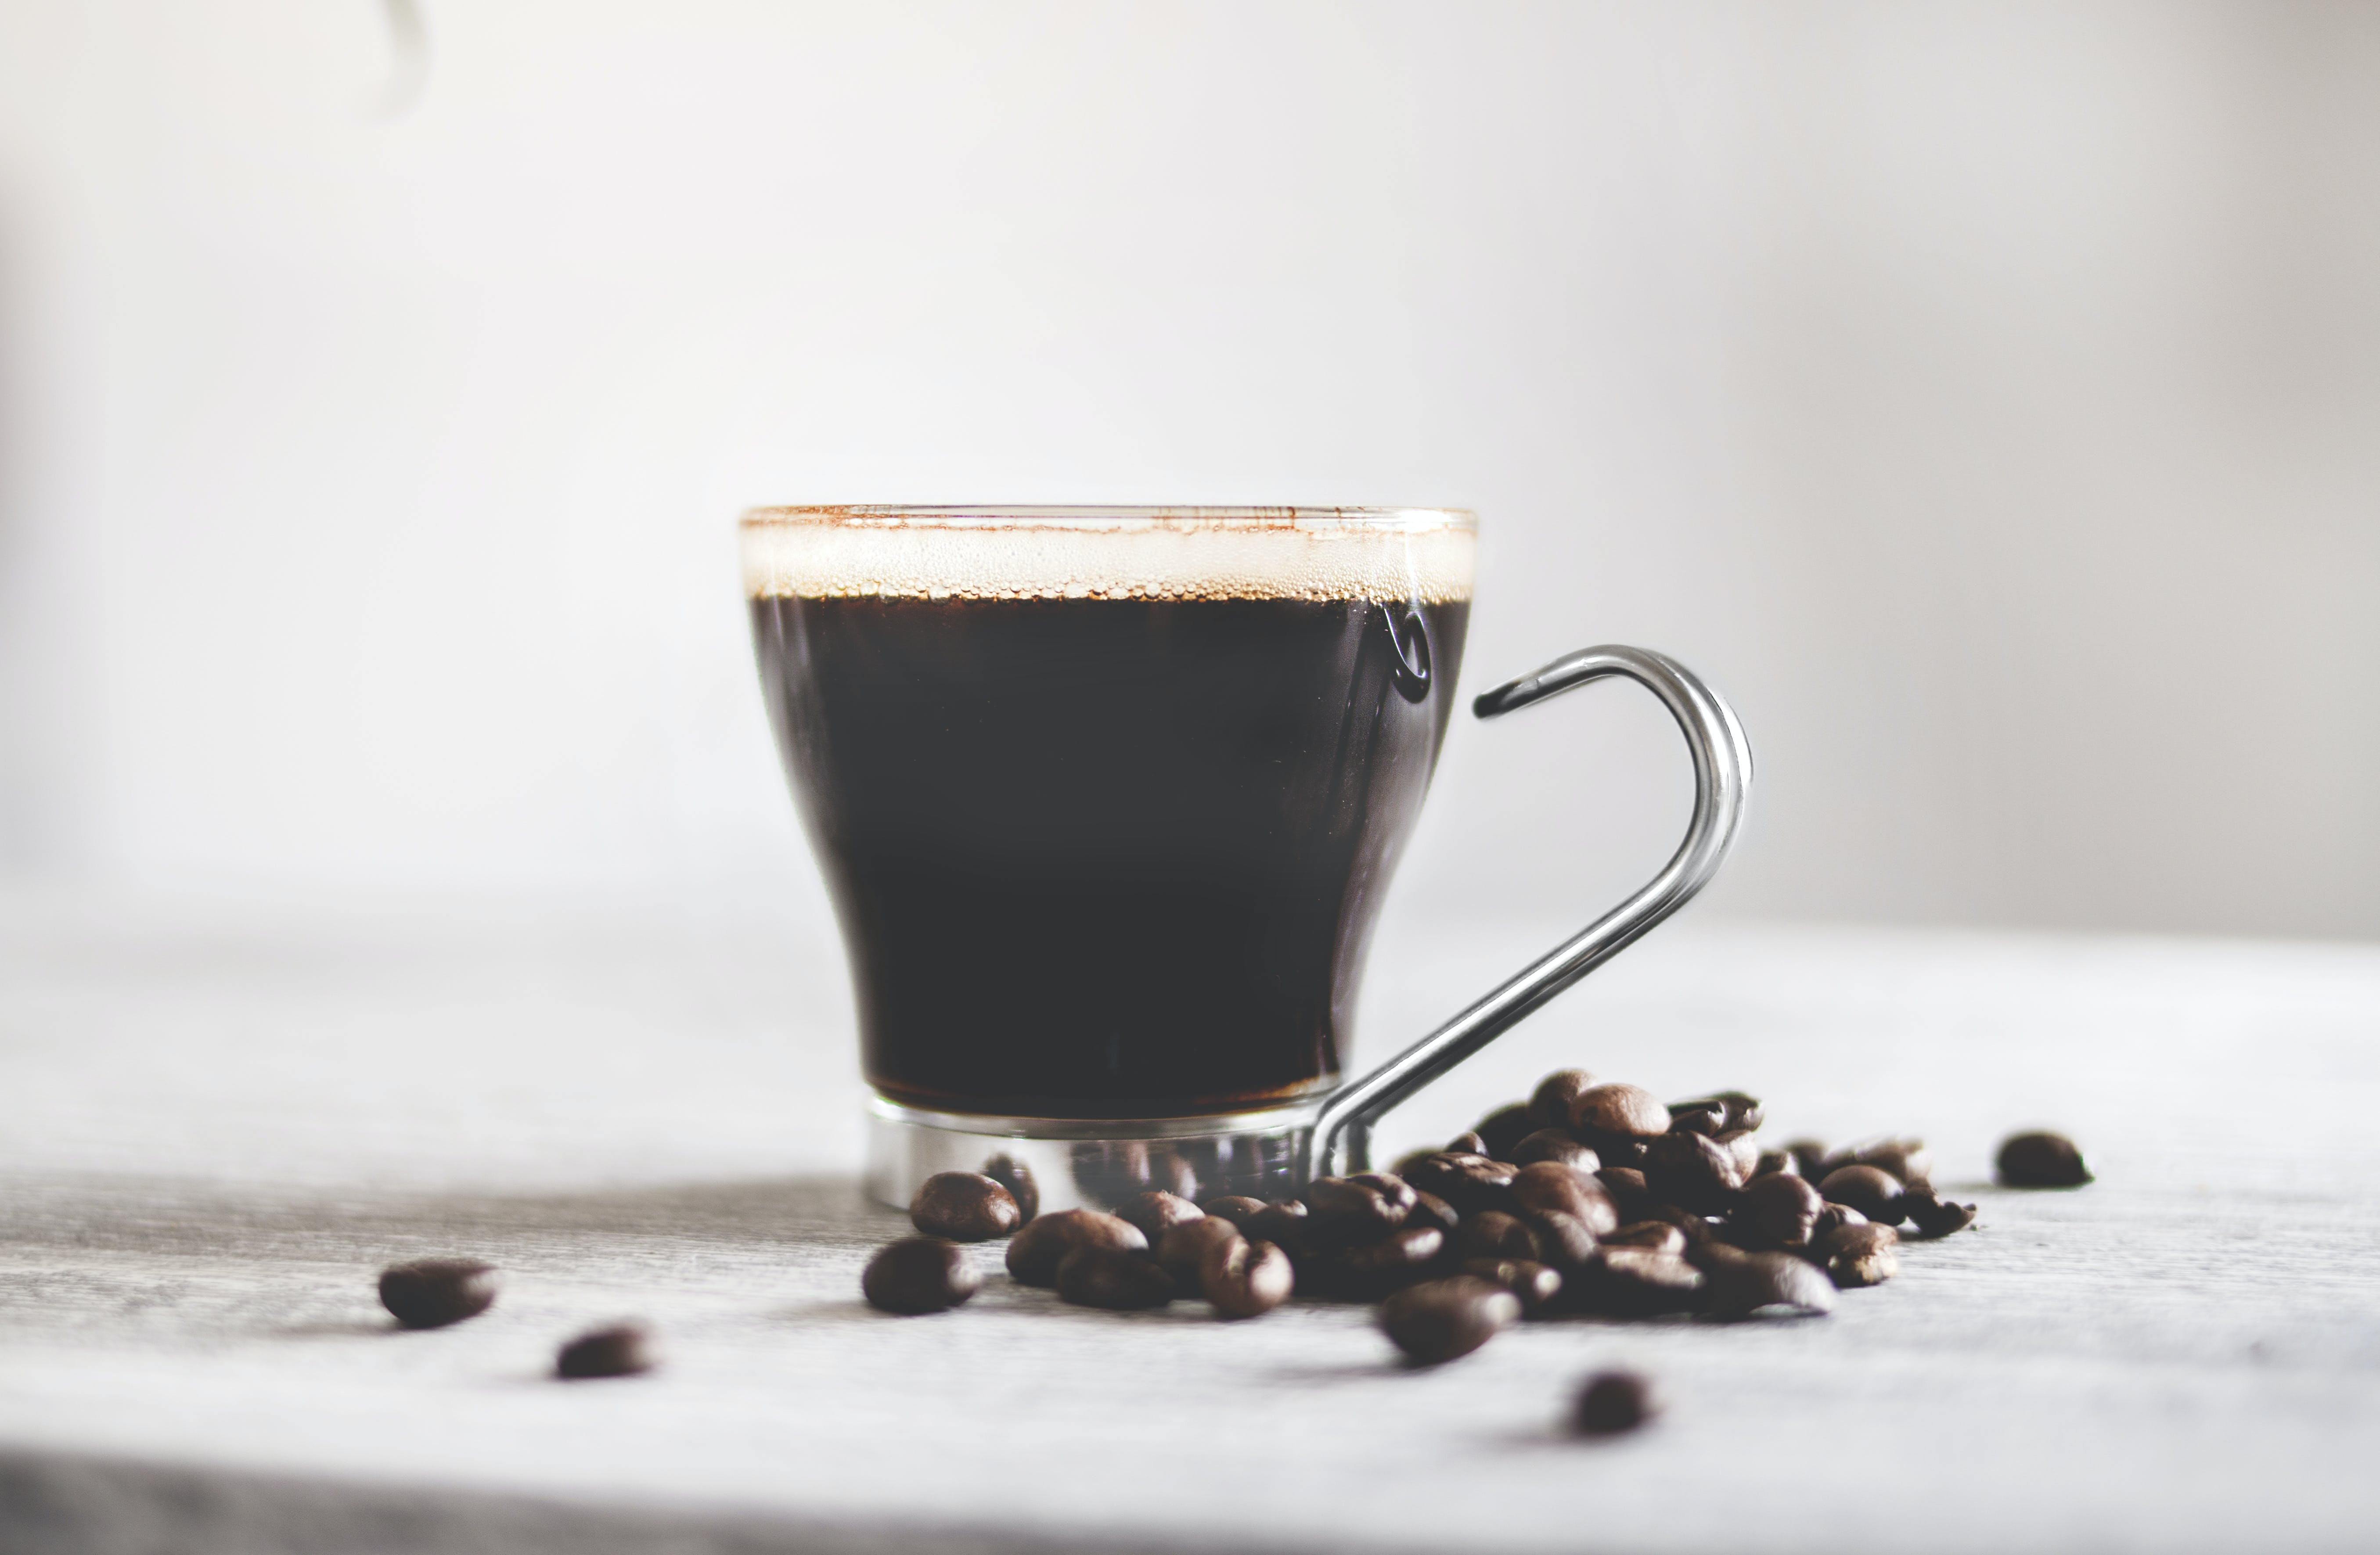 Close-up Photography of Brewed Coffee